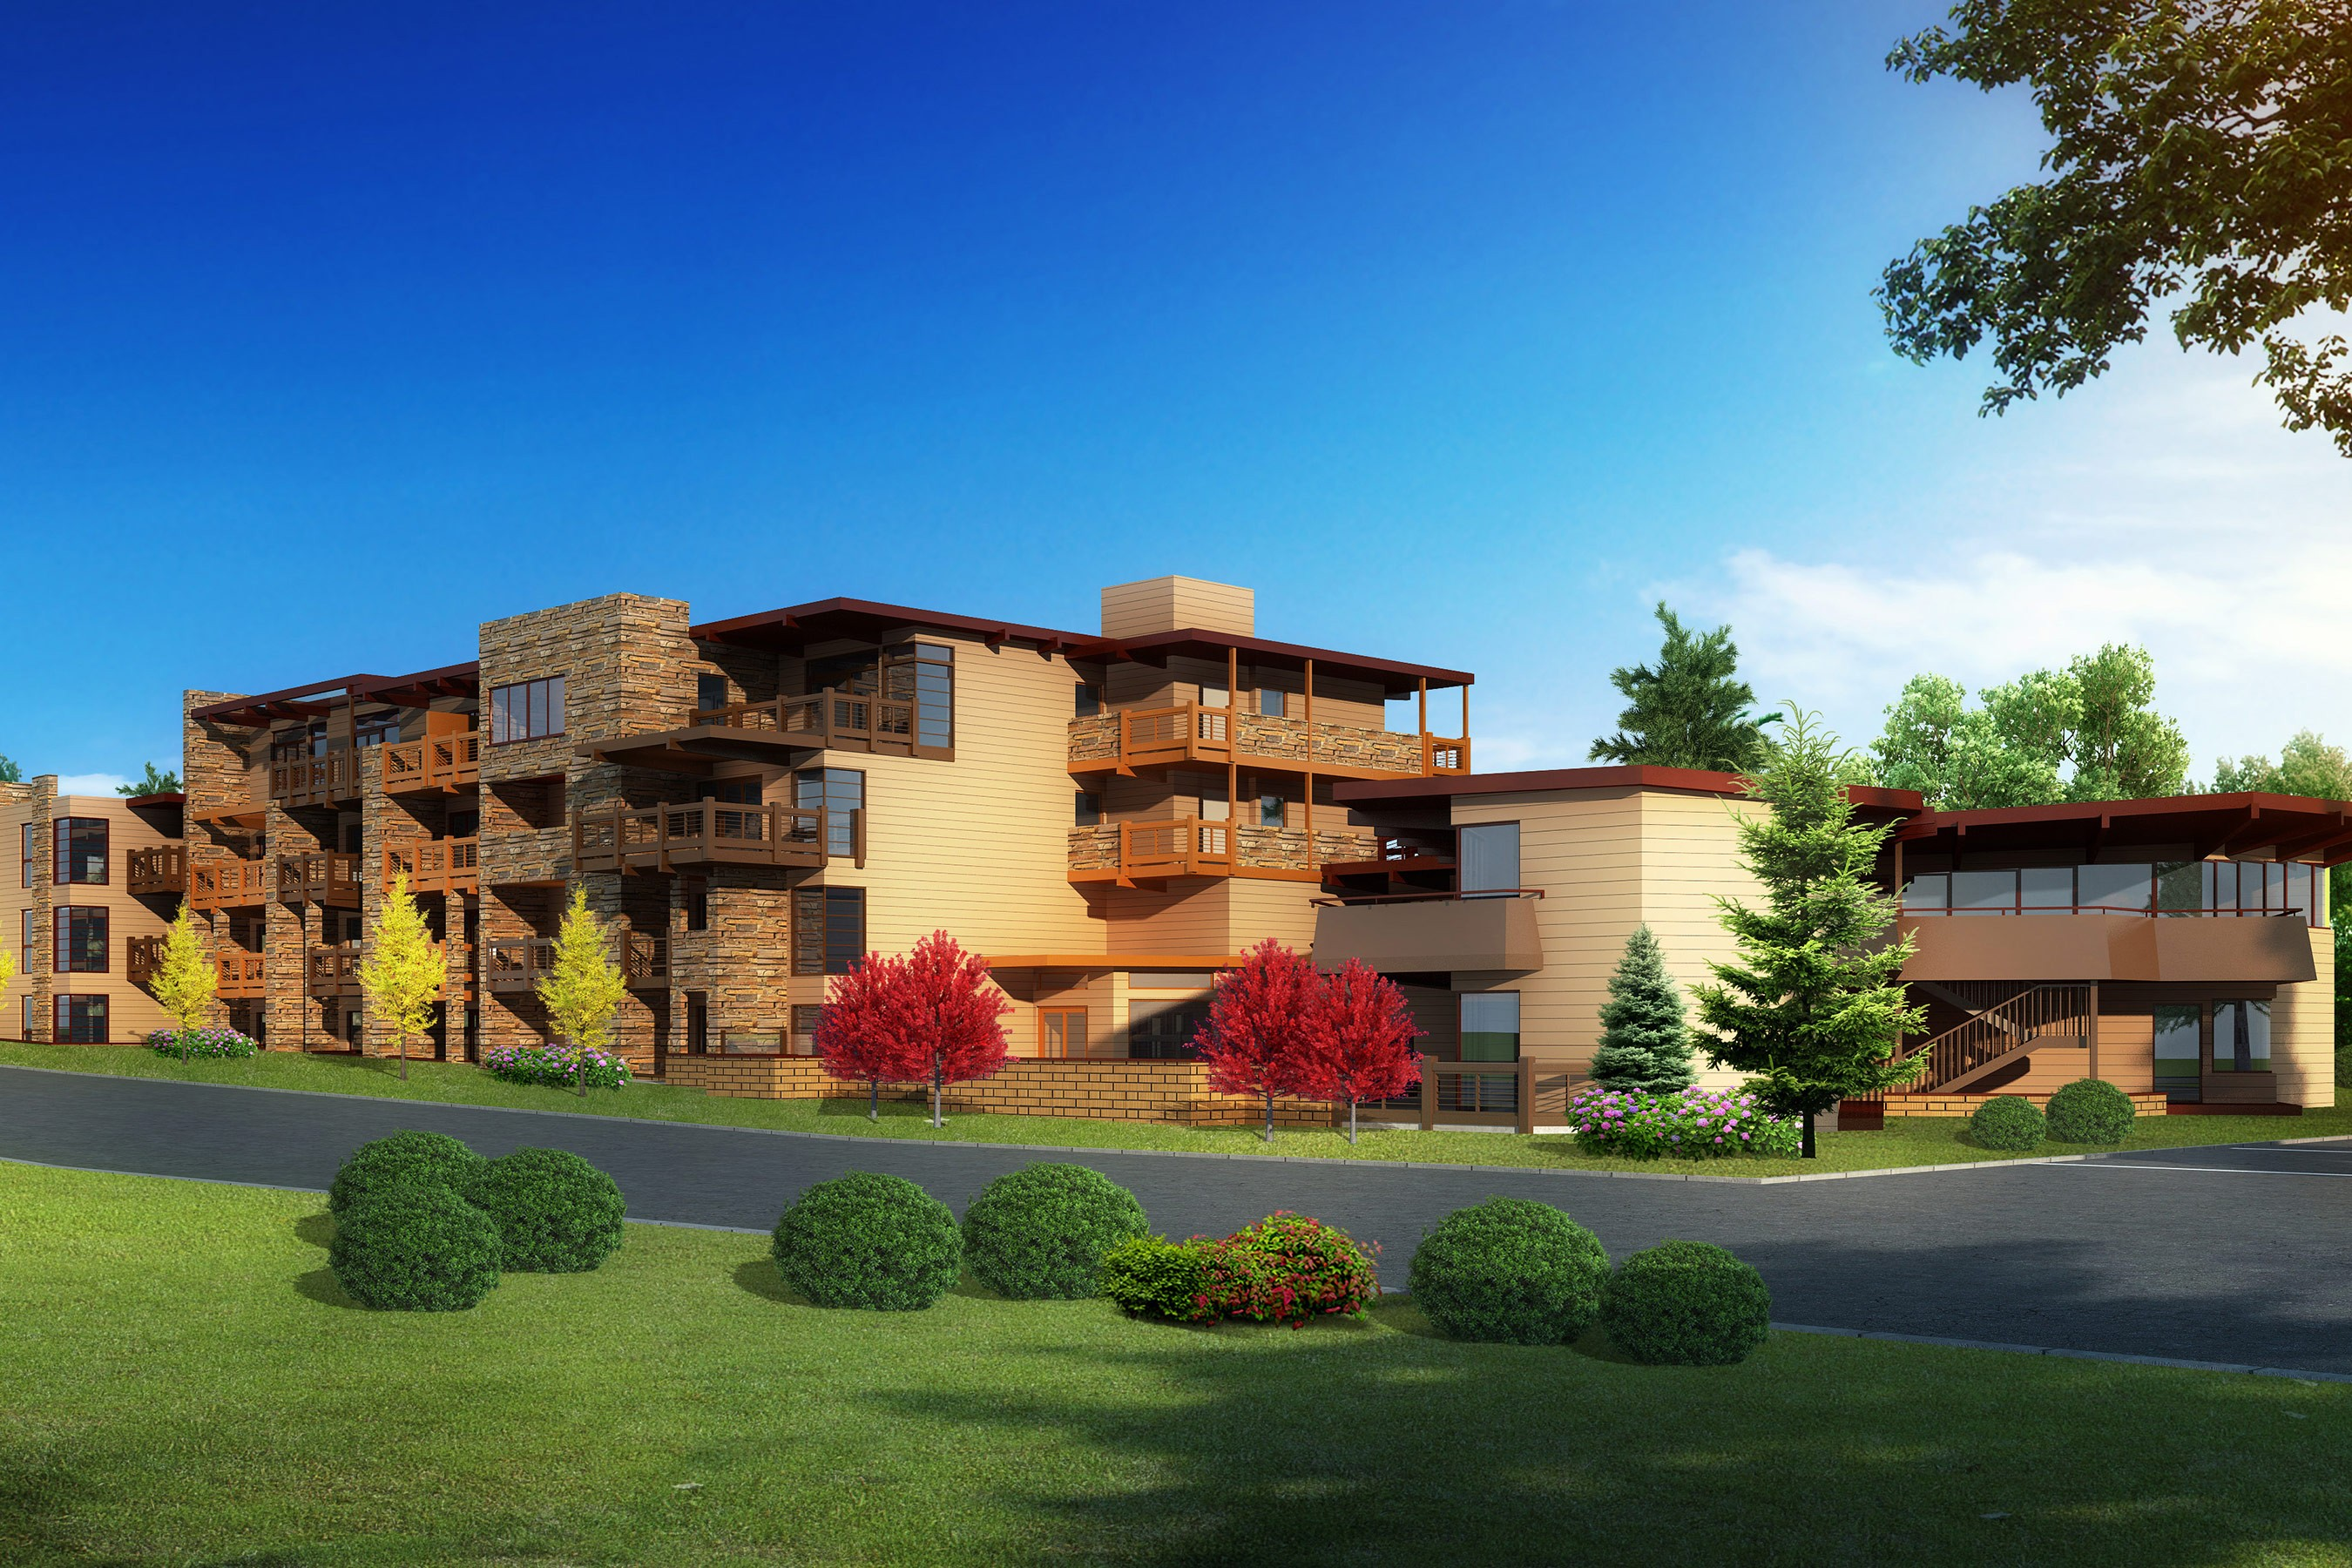 Condominium for Sale at Boomerang Lodge 500 W. Hopkins Avenue Unit 114 Aspen, Colorado, 81611 United States